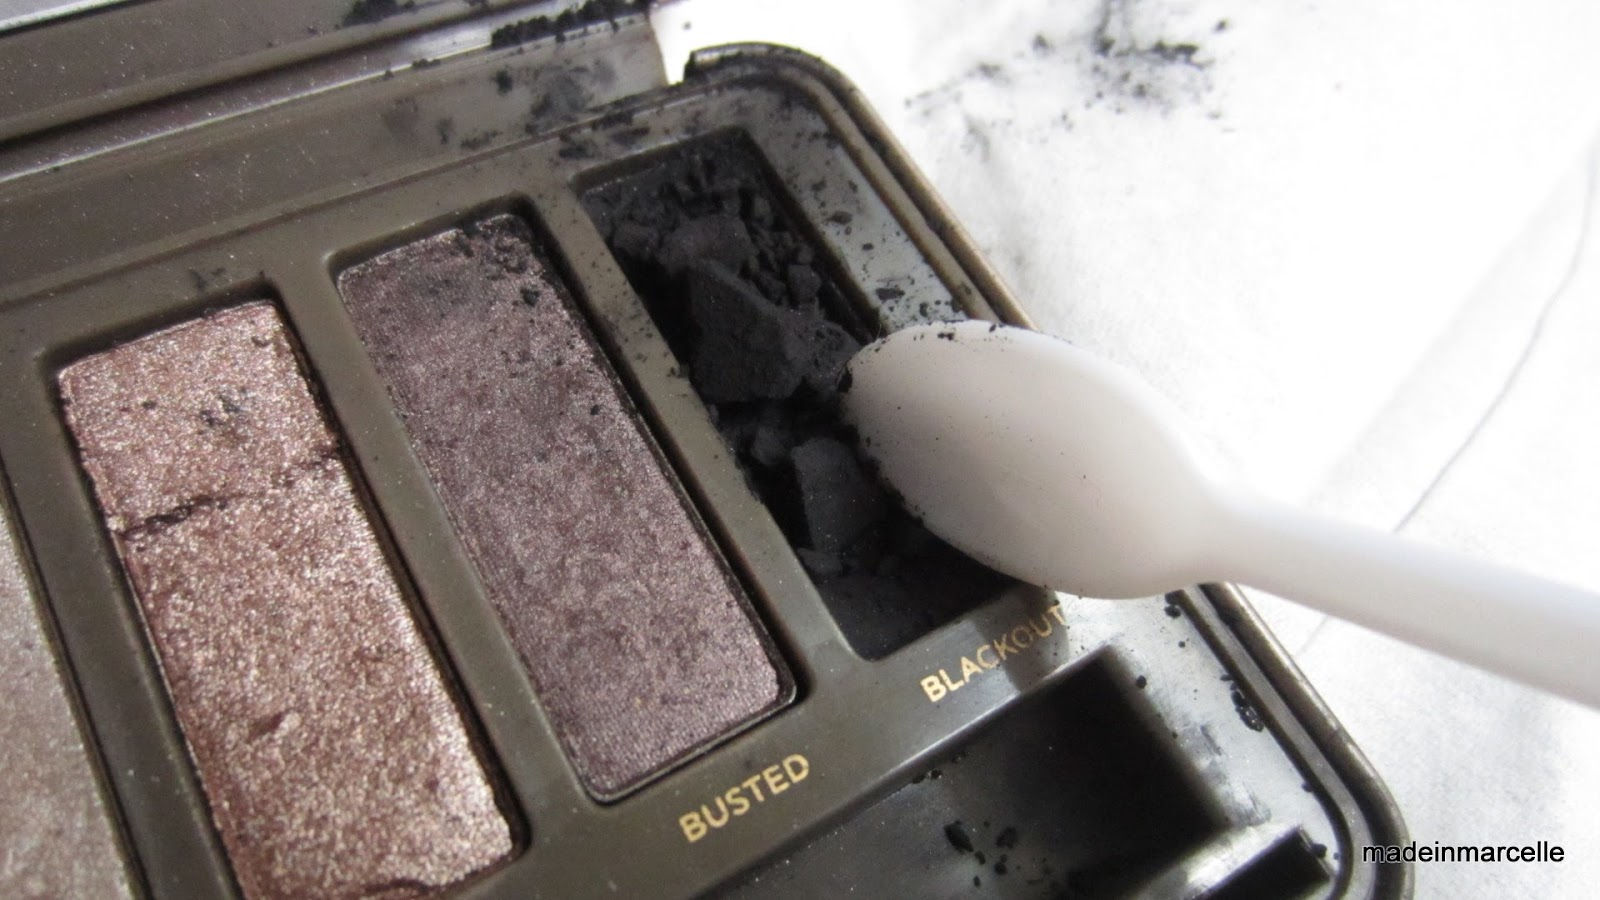 How to fix broken powder makeup with alcohol in four simple steps - Step 3 With The Sanitised Spoon Break The Eyeshadow Into Fine Powder Particles Make Sure You Have A Piece Of Tissue Or Paper Underneath In Case You Make